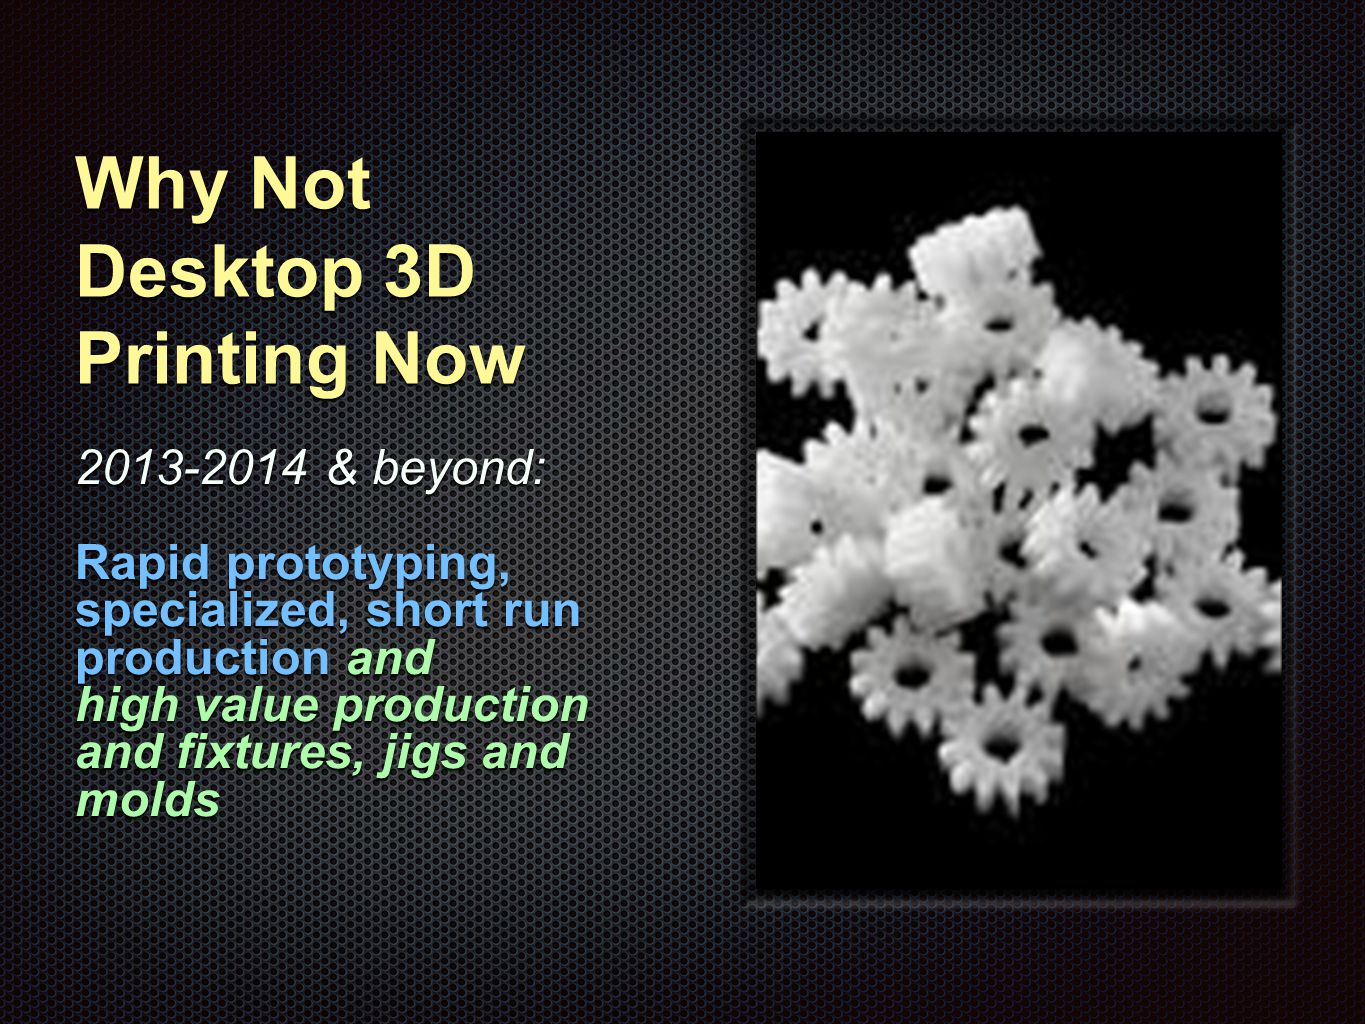 Why Not Desktop 3D Printing Now 2013-2014 & beyond: Rapid prototyping, specialized, short run production and high value production and fixtures, jigs and molds